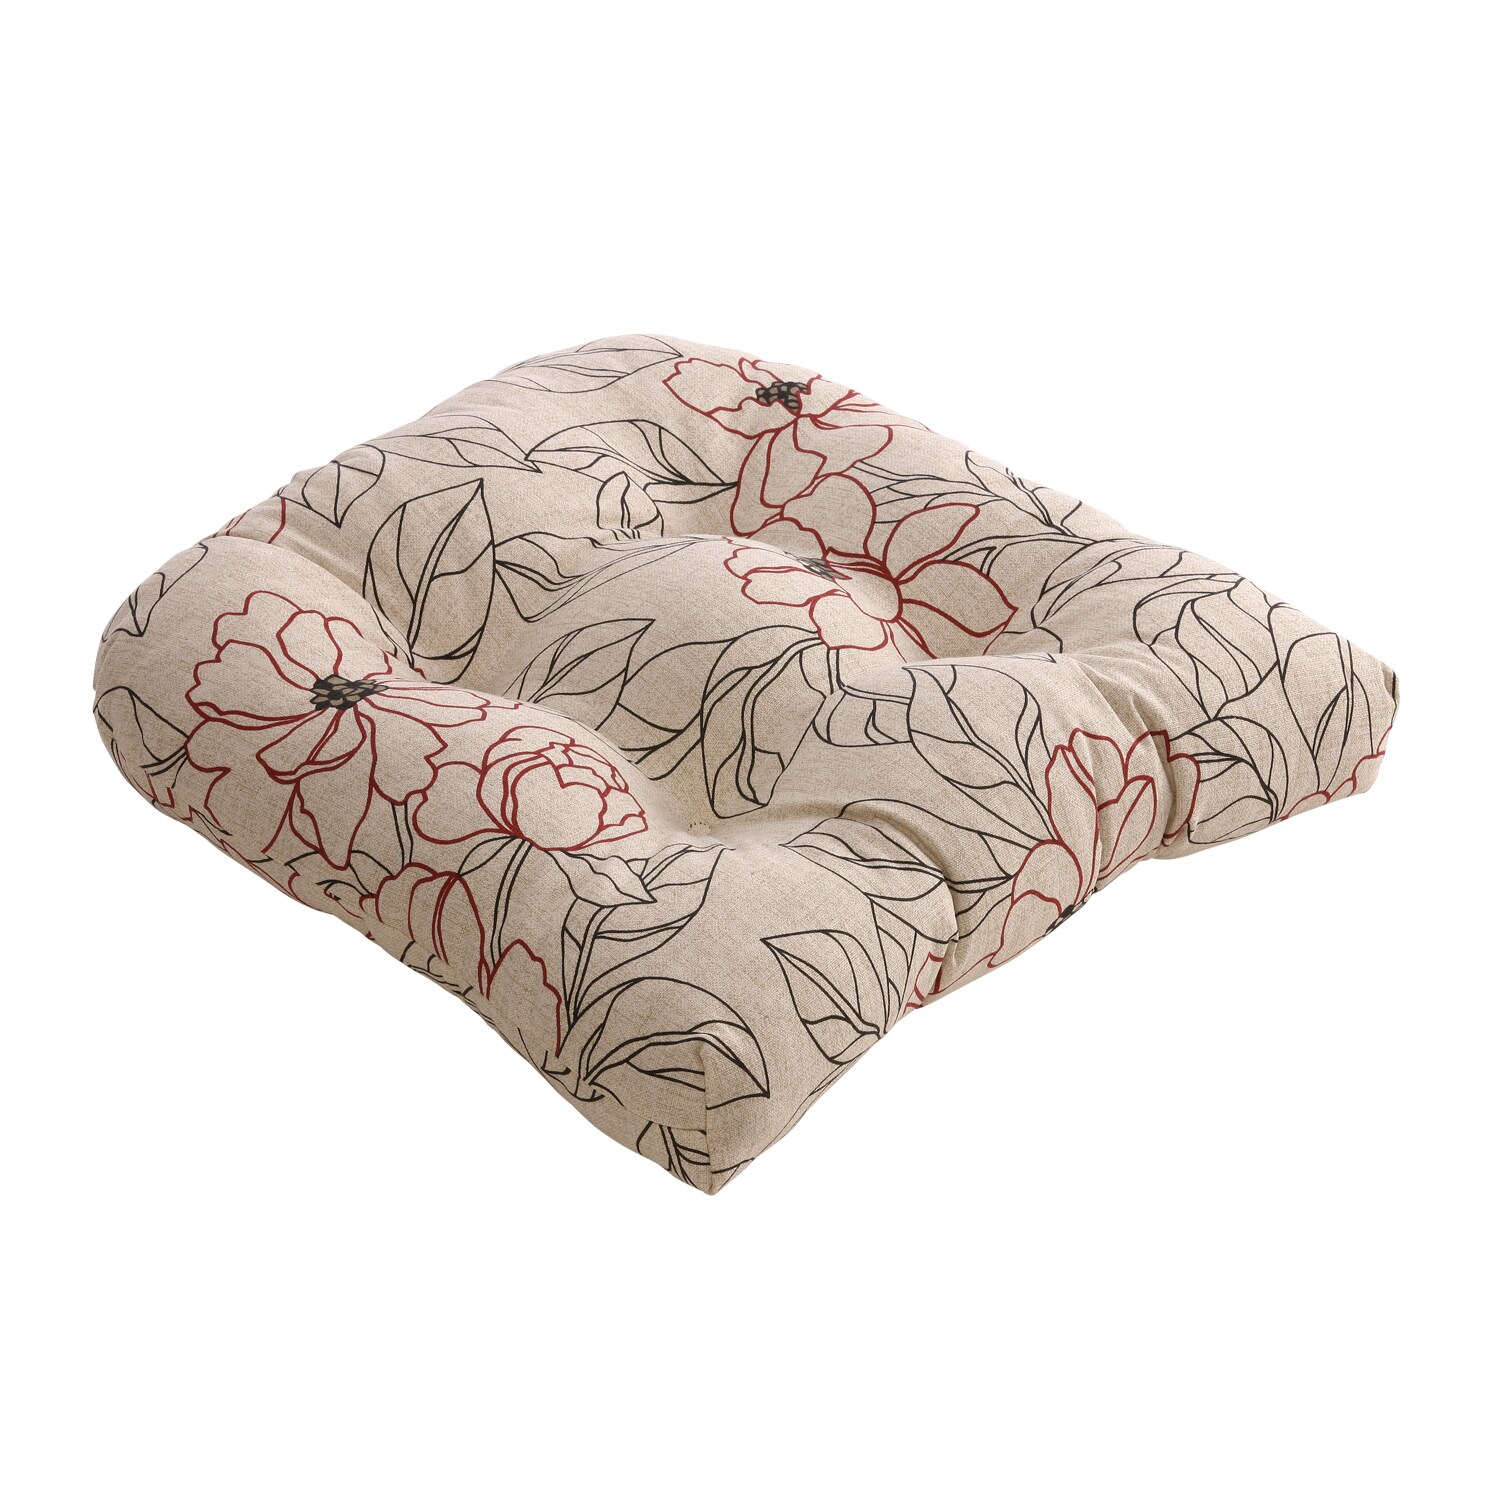 Red/ Beige Floral Chair Cushion